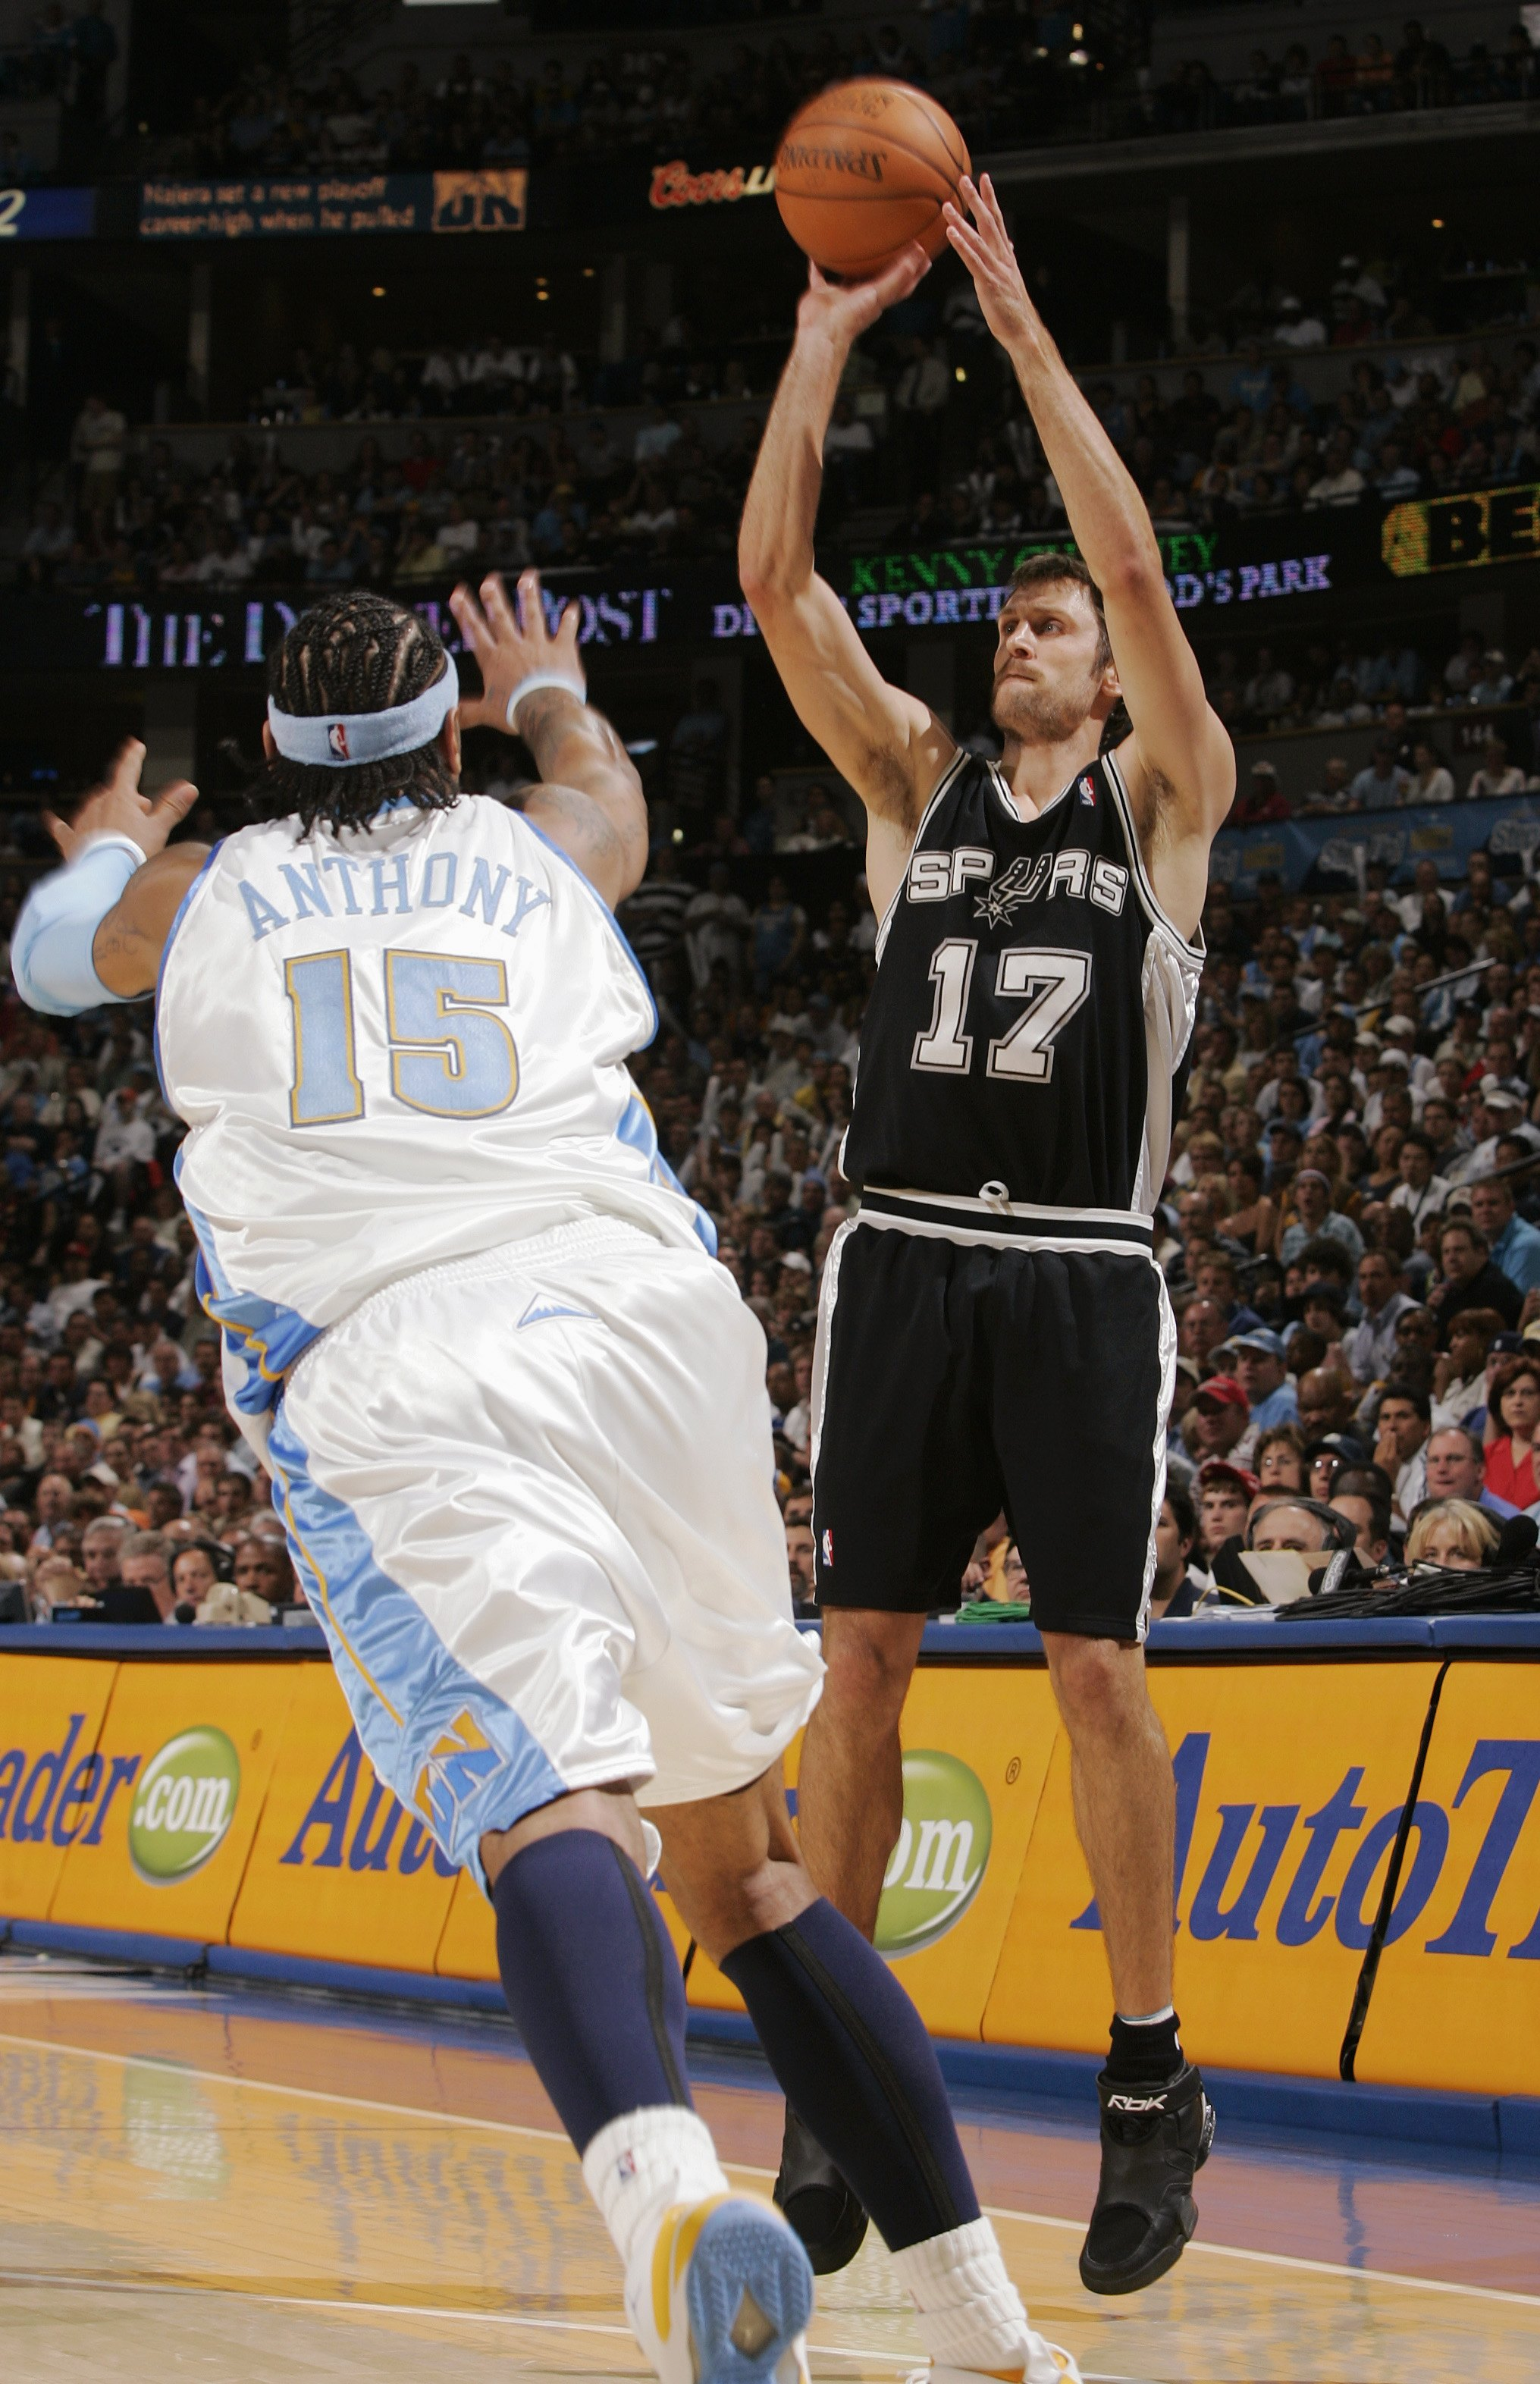 DENVER - APRIL 30:   Brent Barry #17 of the San Antonio Spurs shoots over Carmelo Anthony  #15 of the Denver Nuggets in Game Four of the Western Conference Quarterfinals during the 2007 NBA Playoffs at the Pepsi Center on April 30, 2007 in Denver, Colorad